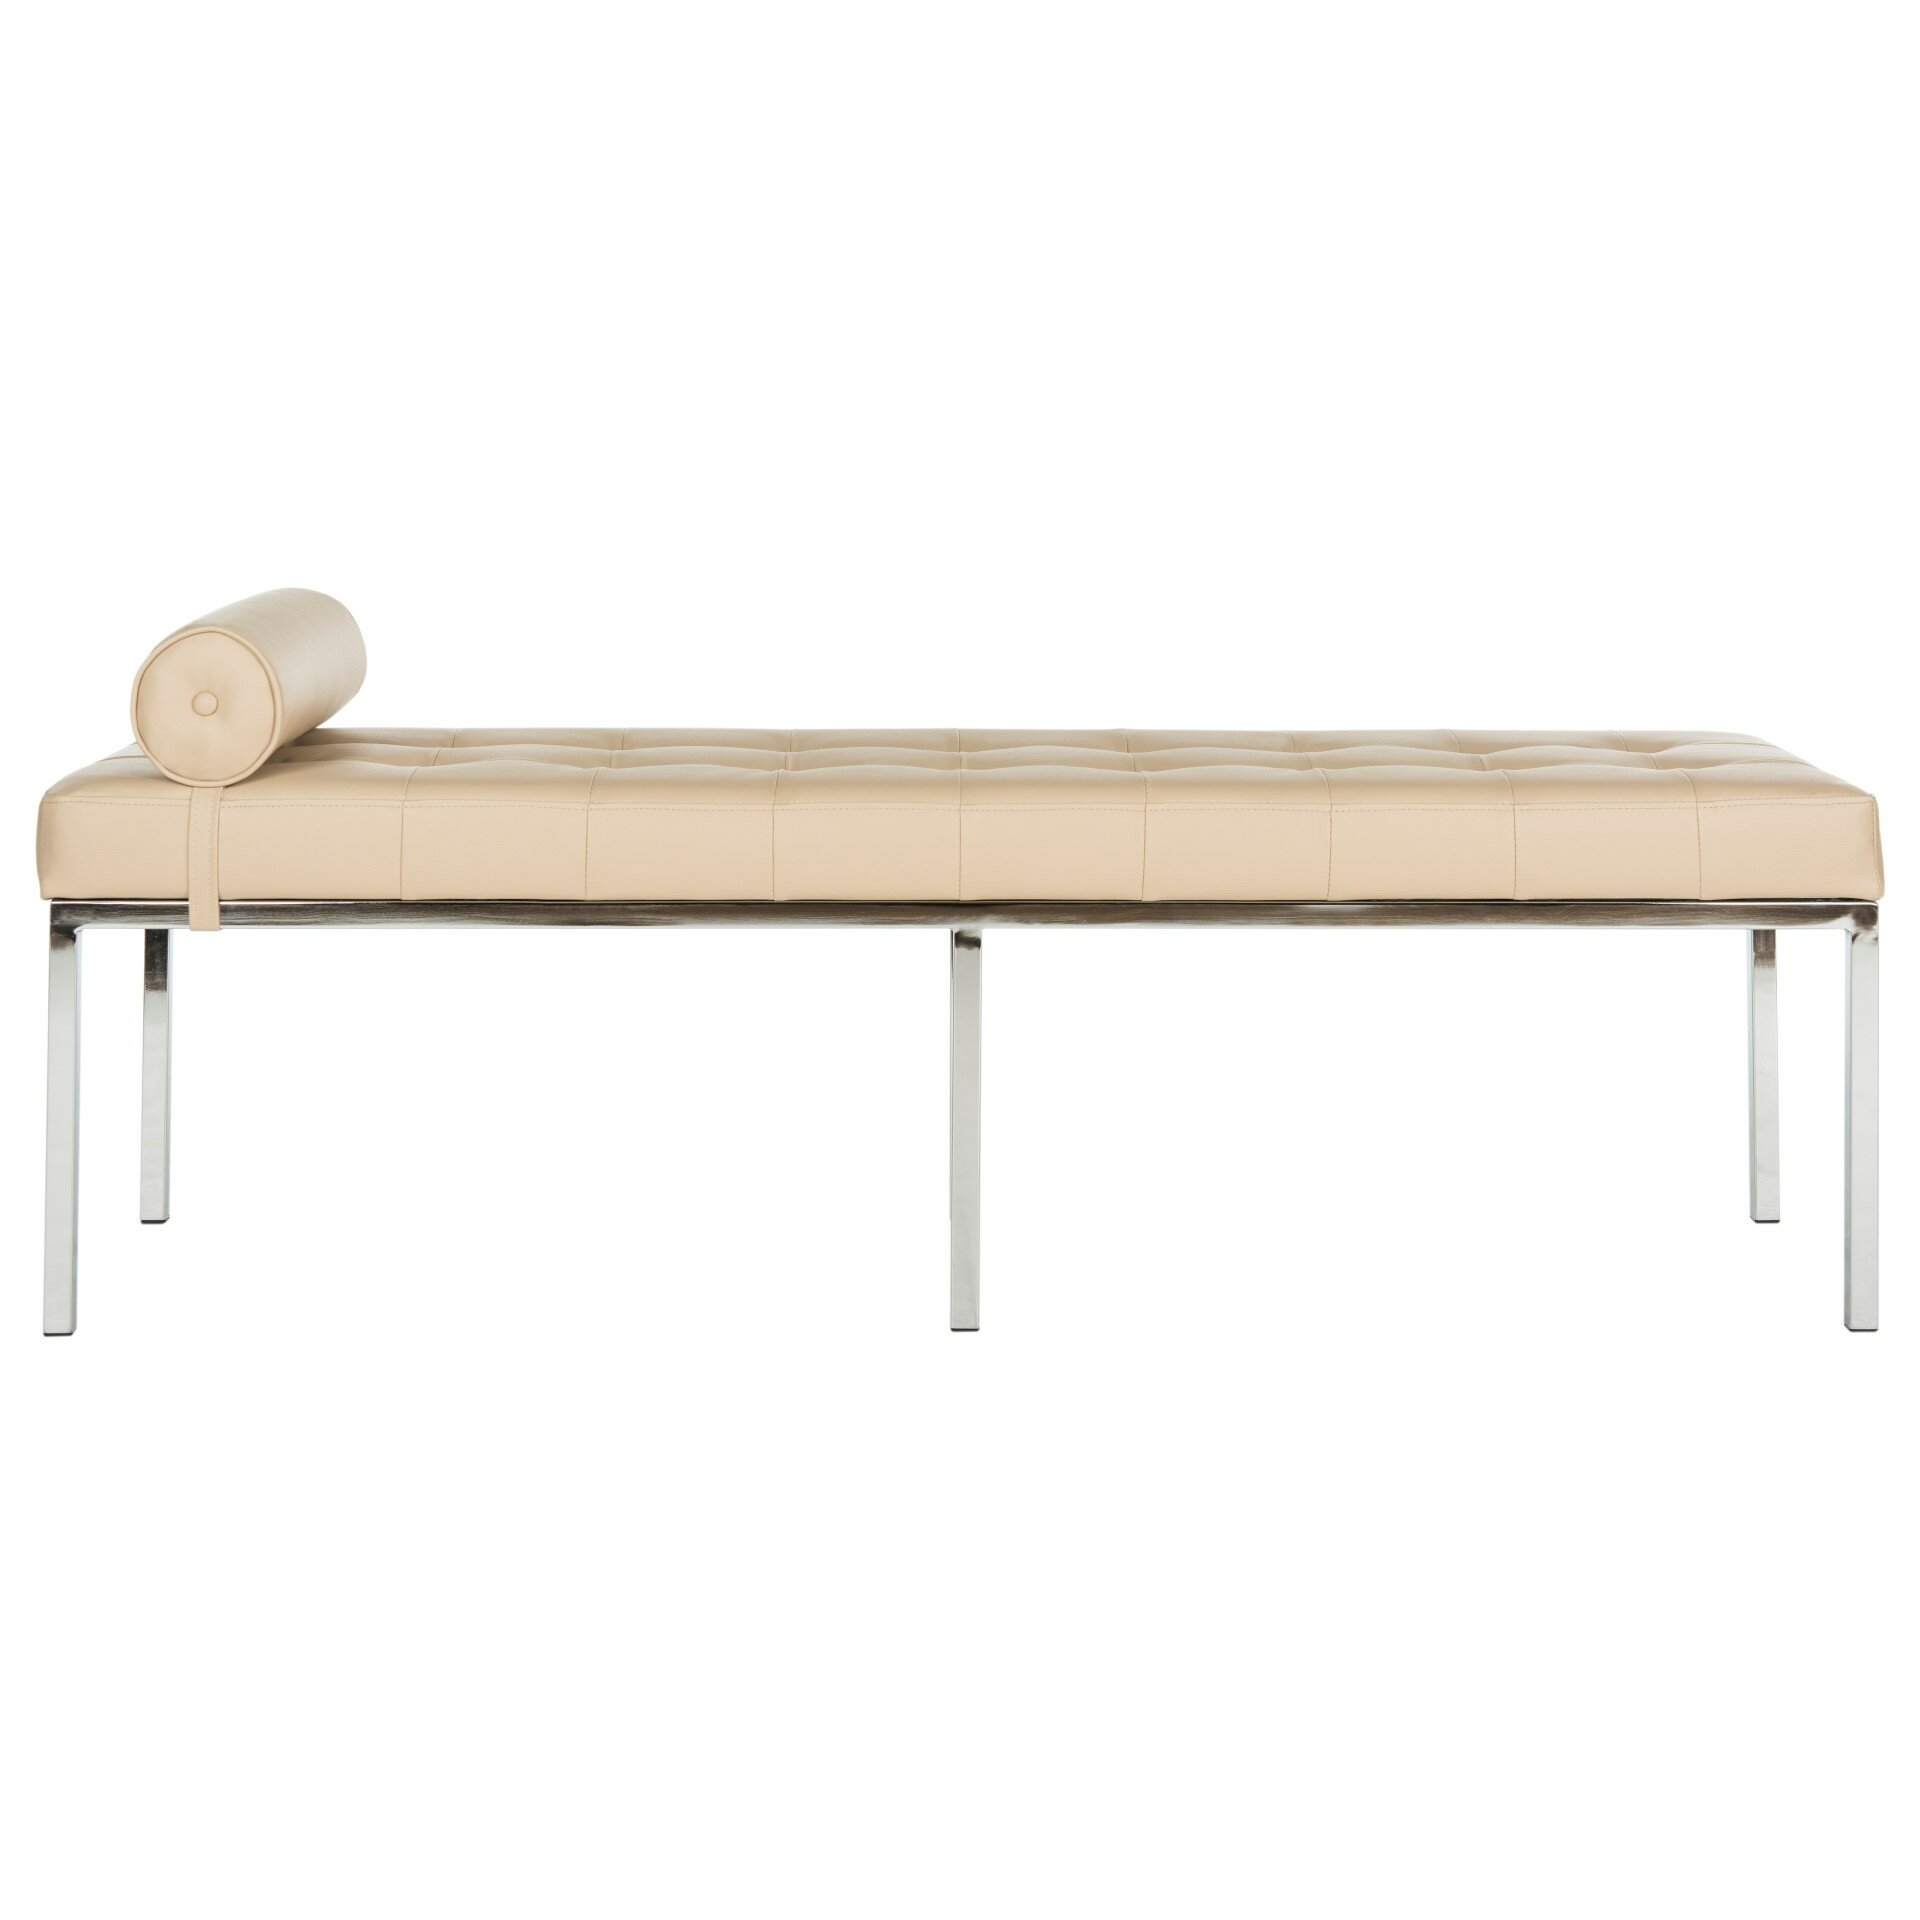 Mercer41 warnant upholstered bedroom bench reviews wayfair for Bedroom upholstered bench